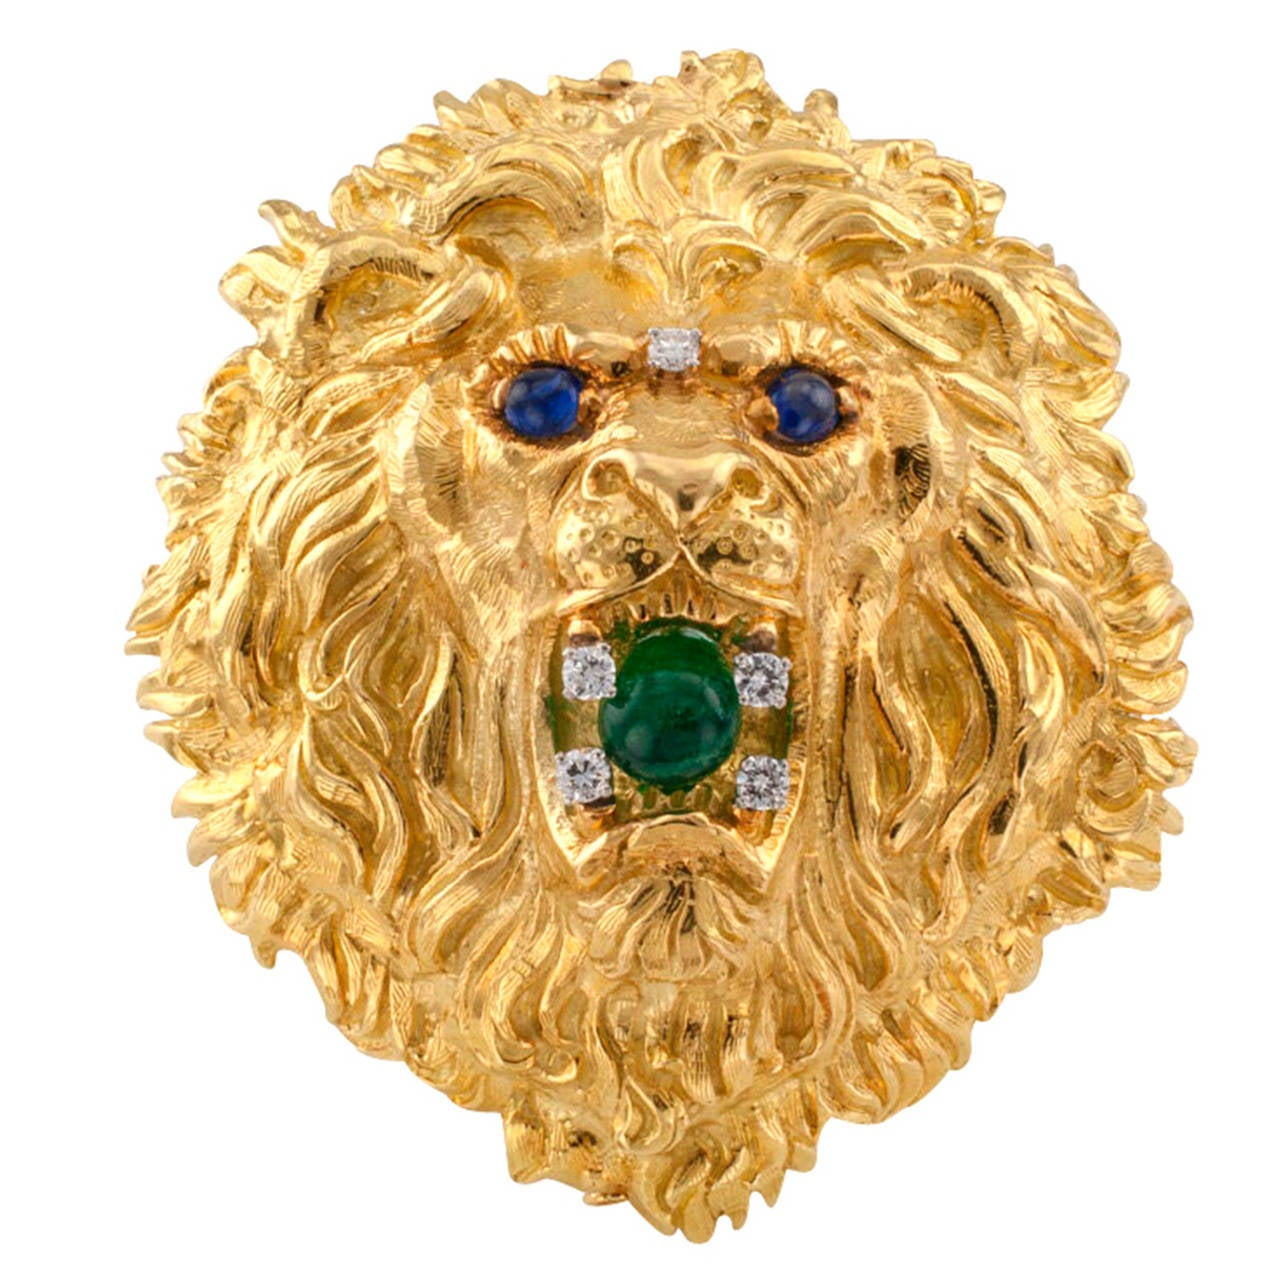 David webb huge emerald sapphire diamond gold lion head brooch david webb huge emerald sapphire diamond gold lion head brooch pendant for sale aloadofball Choice Image